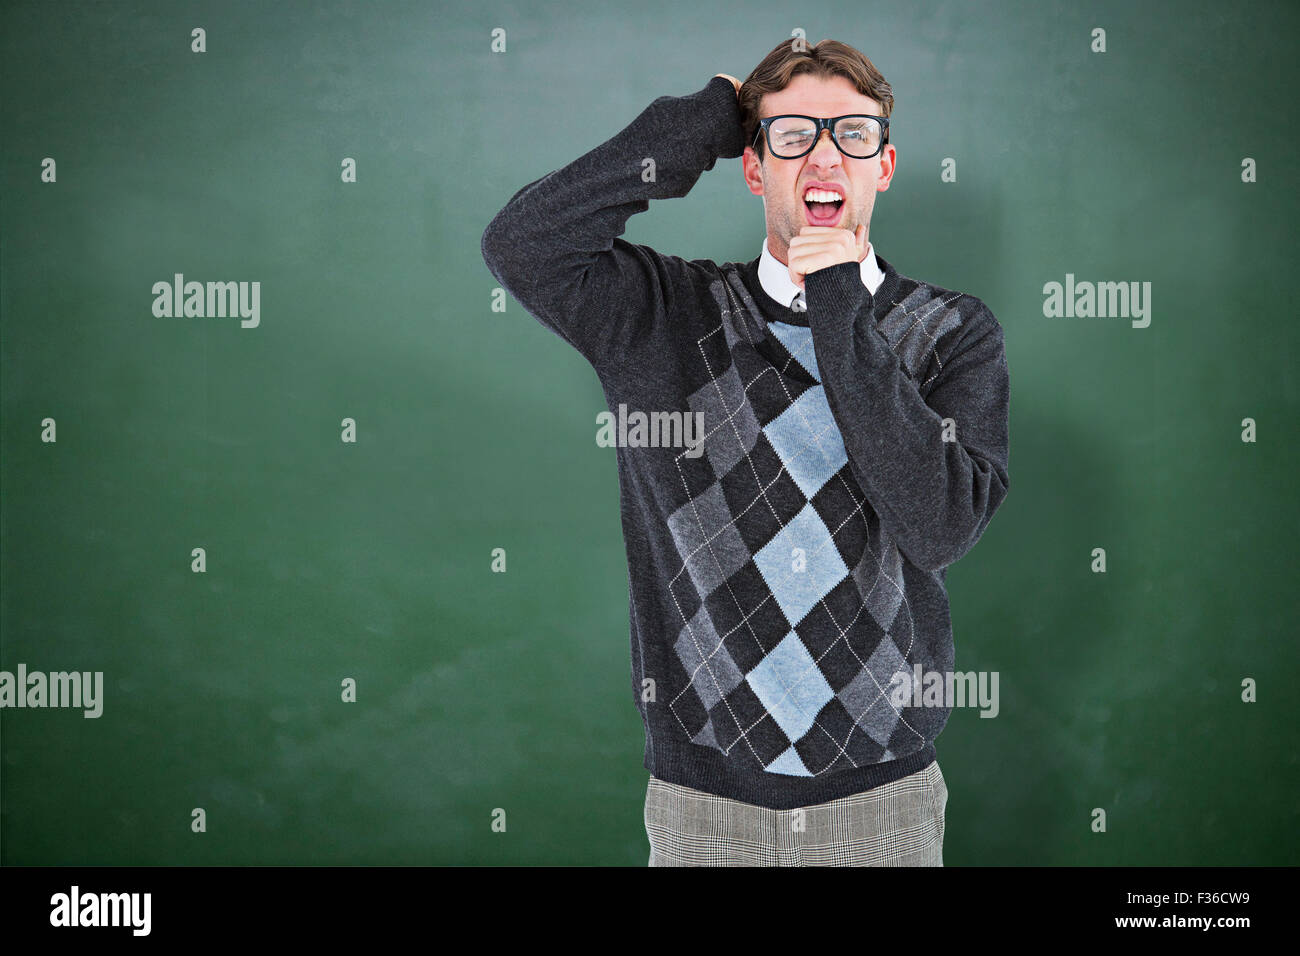 Composite image of geeky hipster frowning at camera - Stock Image